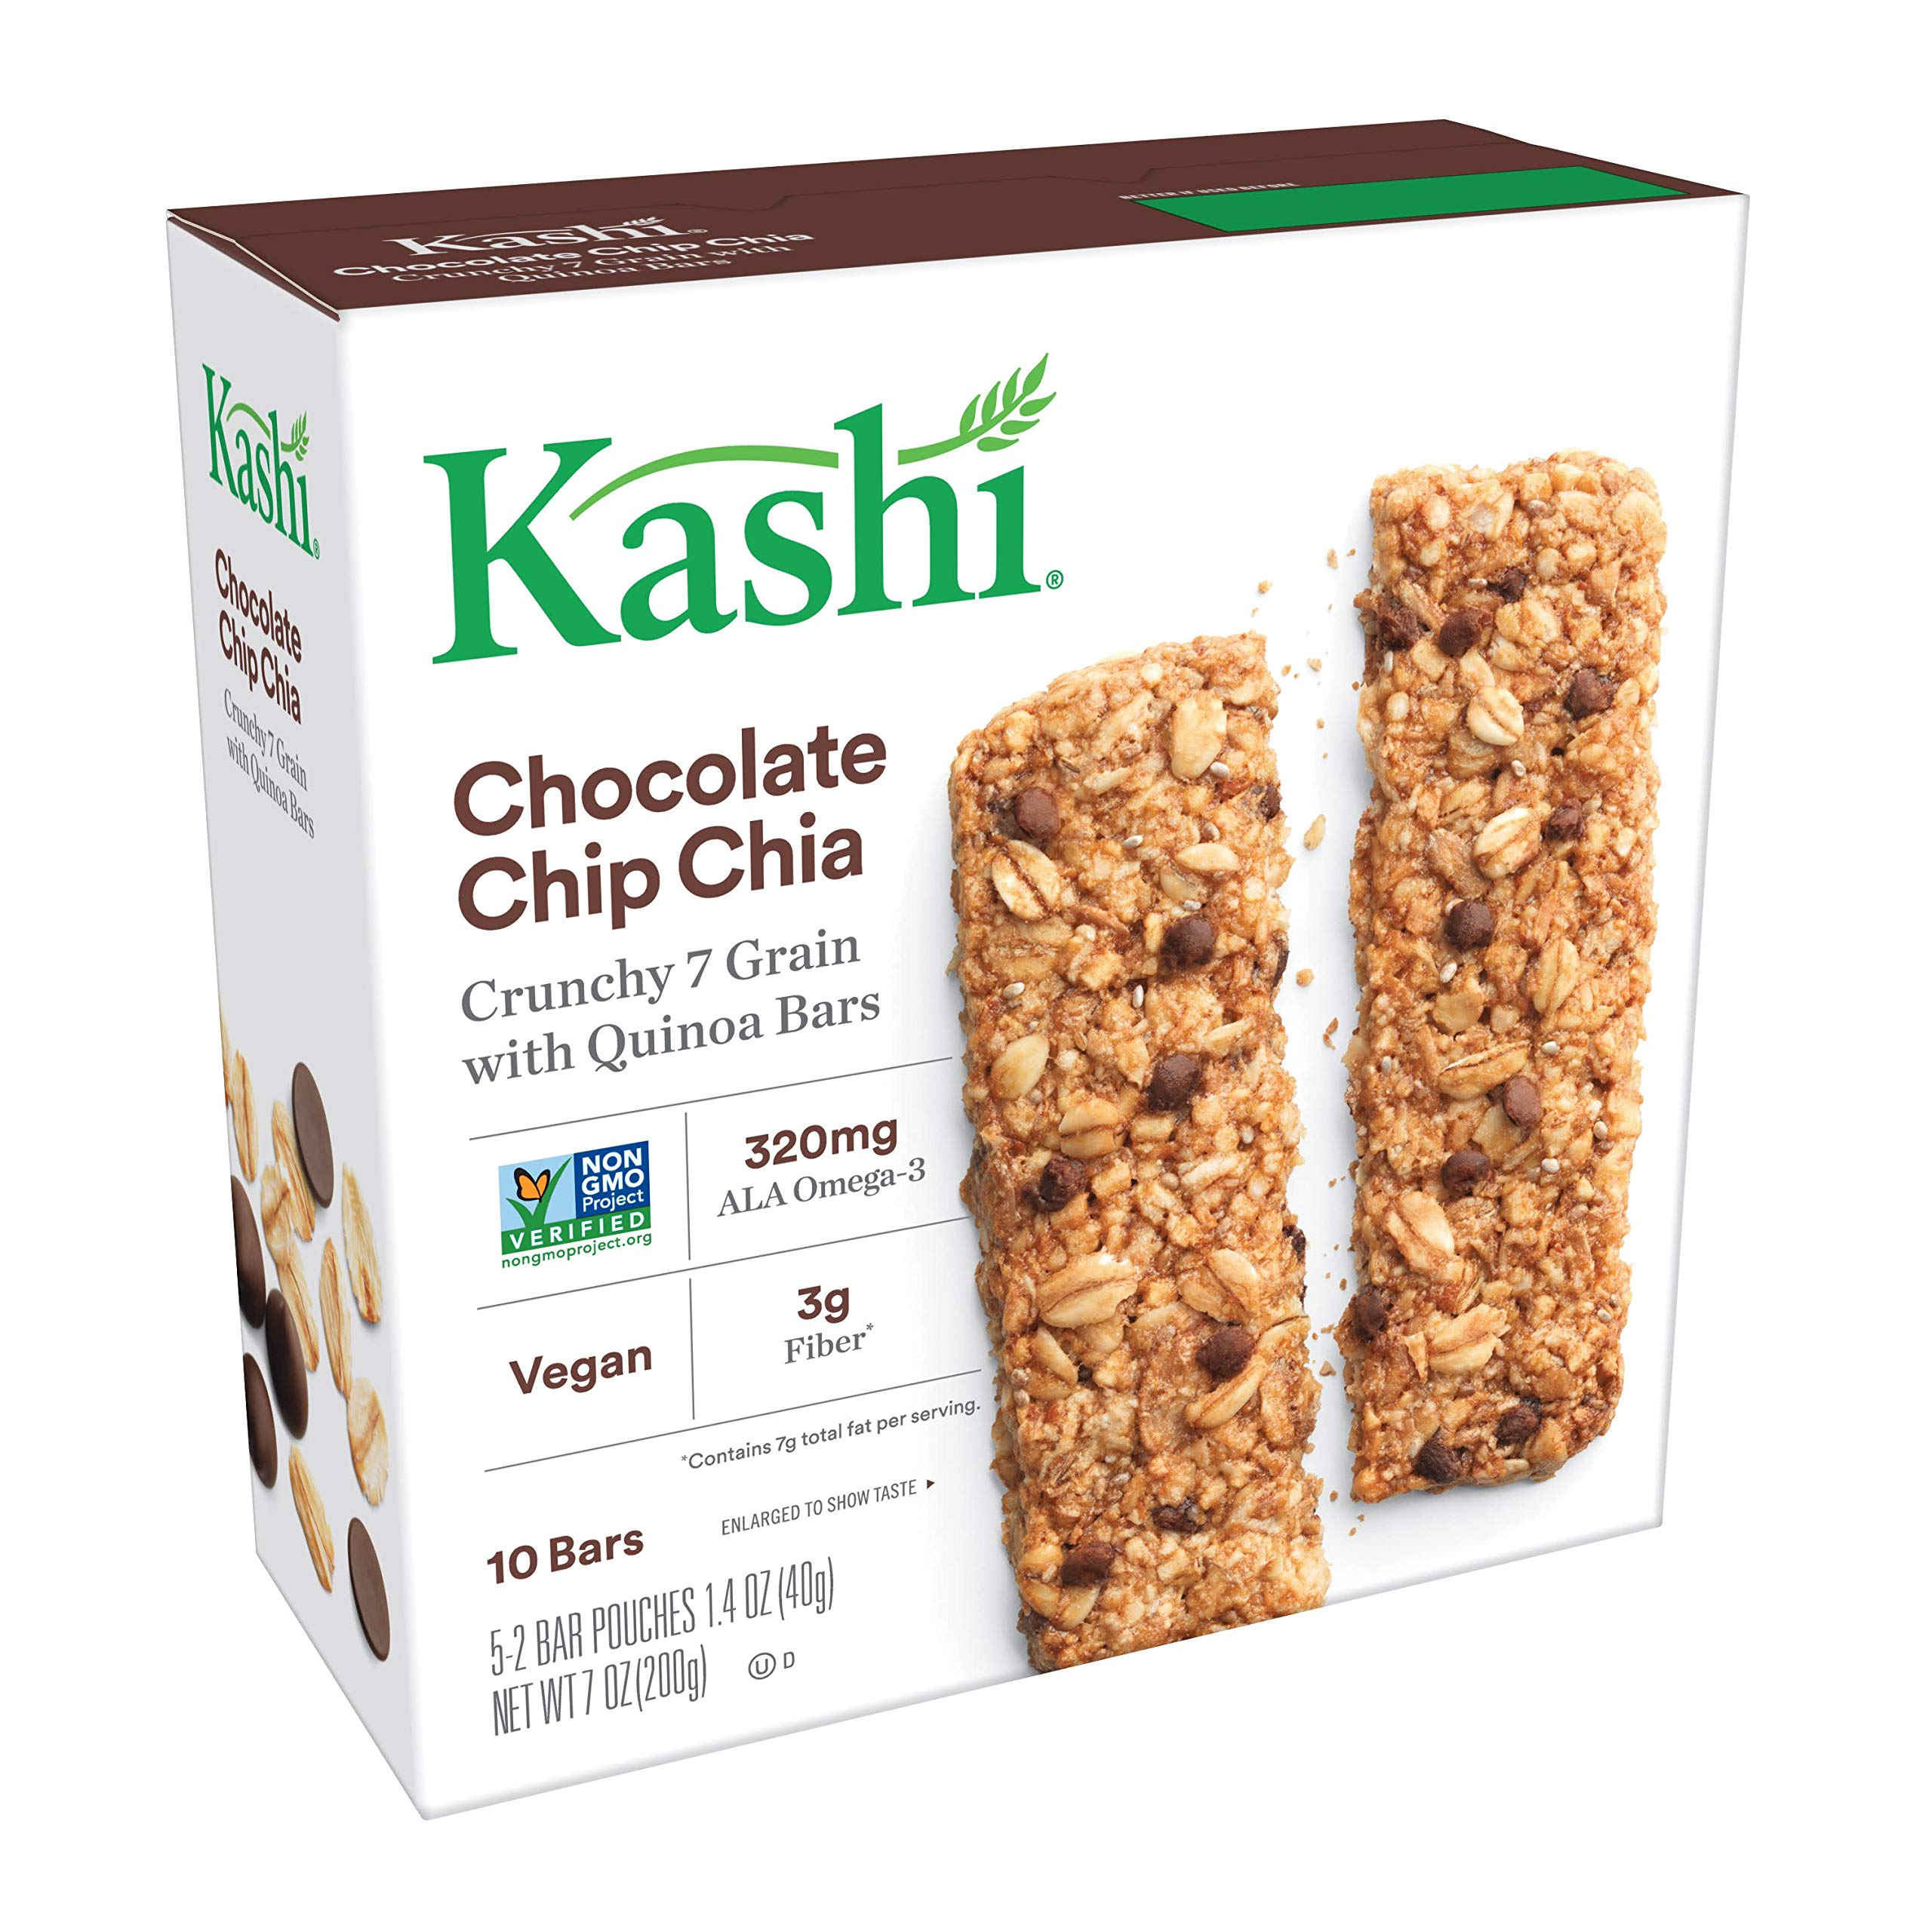 Kashi, Crunchy 7 Grain with Quinoa Bars, Chocolate Chip Chia, Non-GMO Project Verified, 7 oz (10 Count)